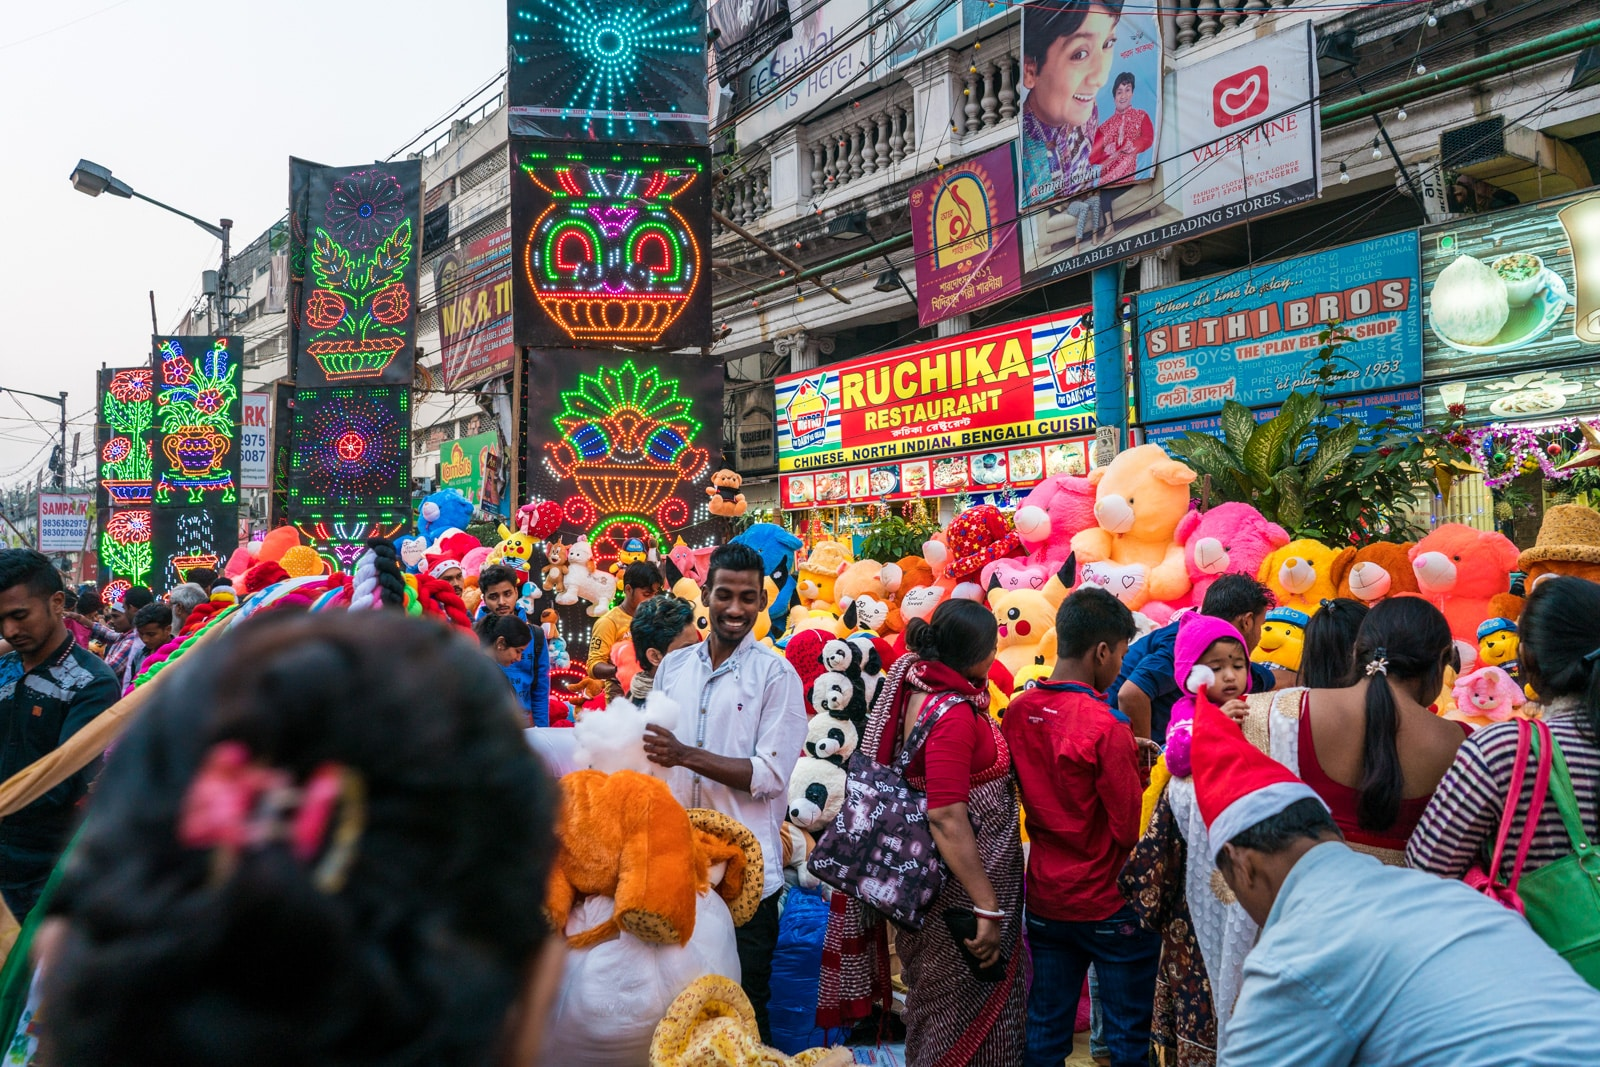 Christmas in Kolkata, India - Street carnival and shops near New Market - Lost With Purpose travel blog